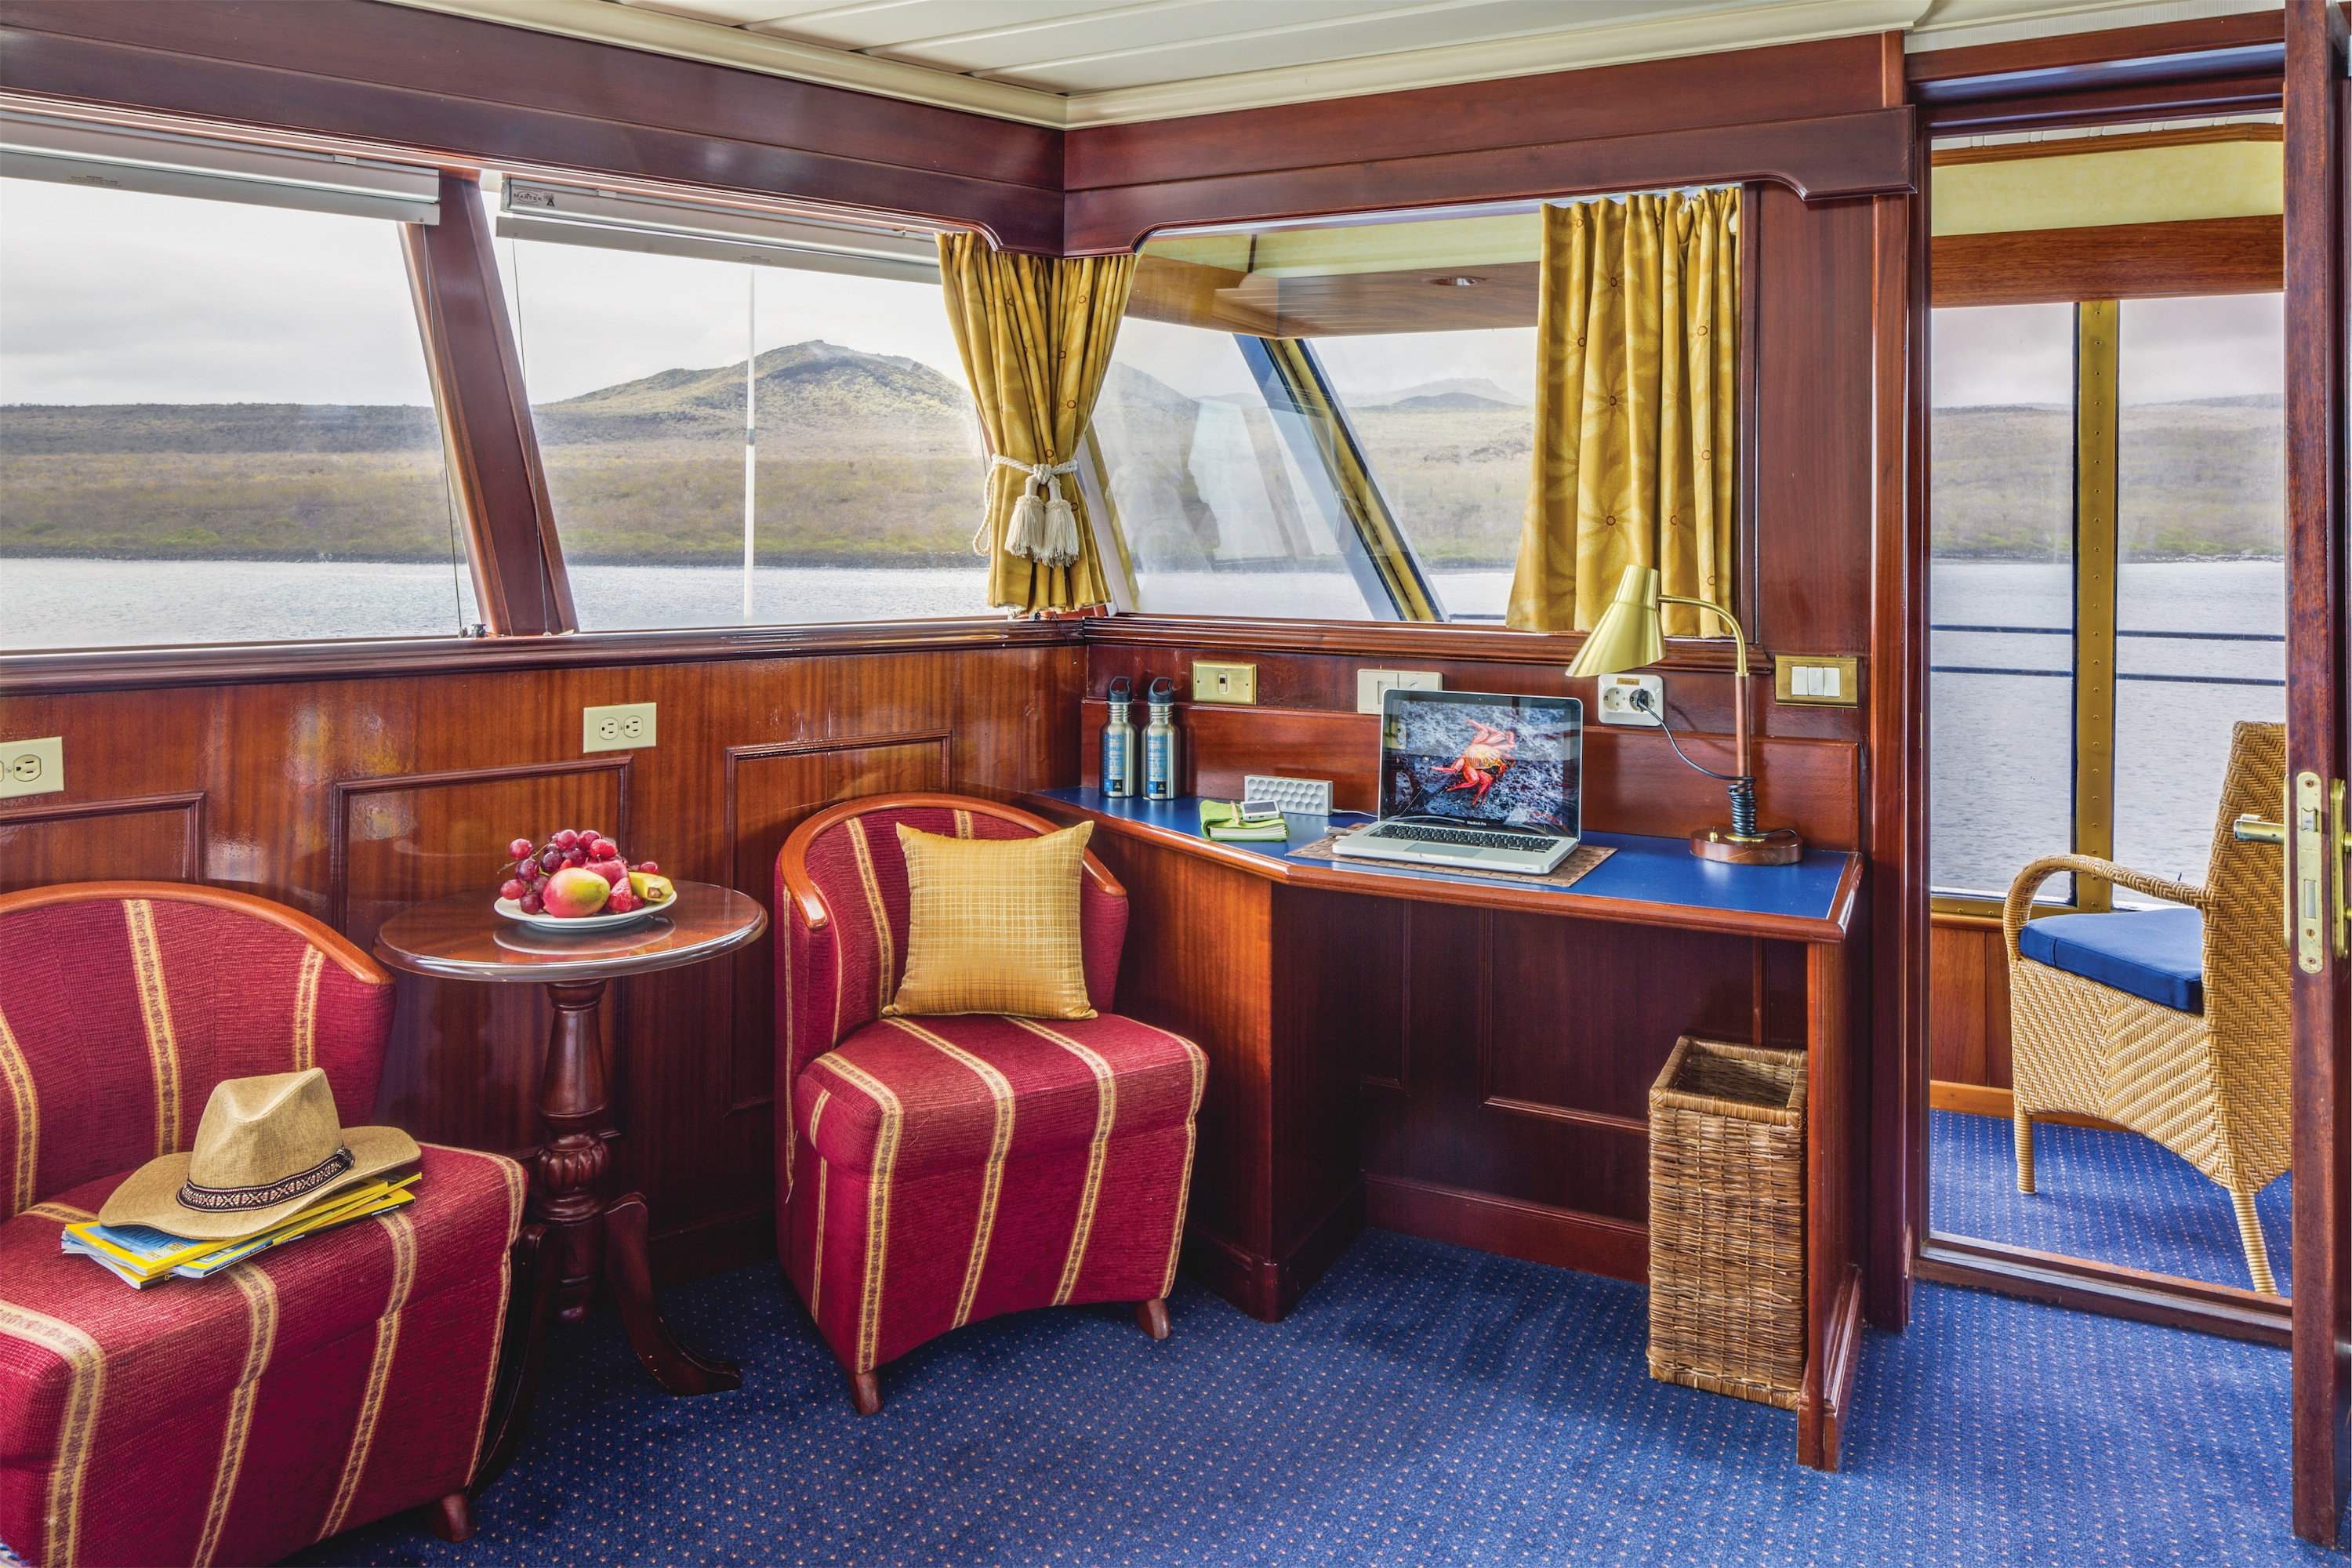 Lindblad Expeditions National Geographic Islander Accommodation Category 5 Living Room & Desk.jpg